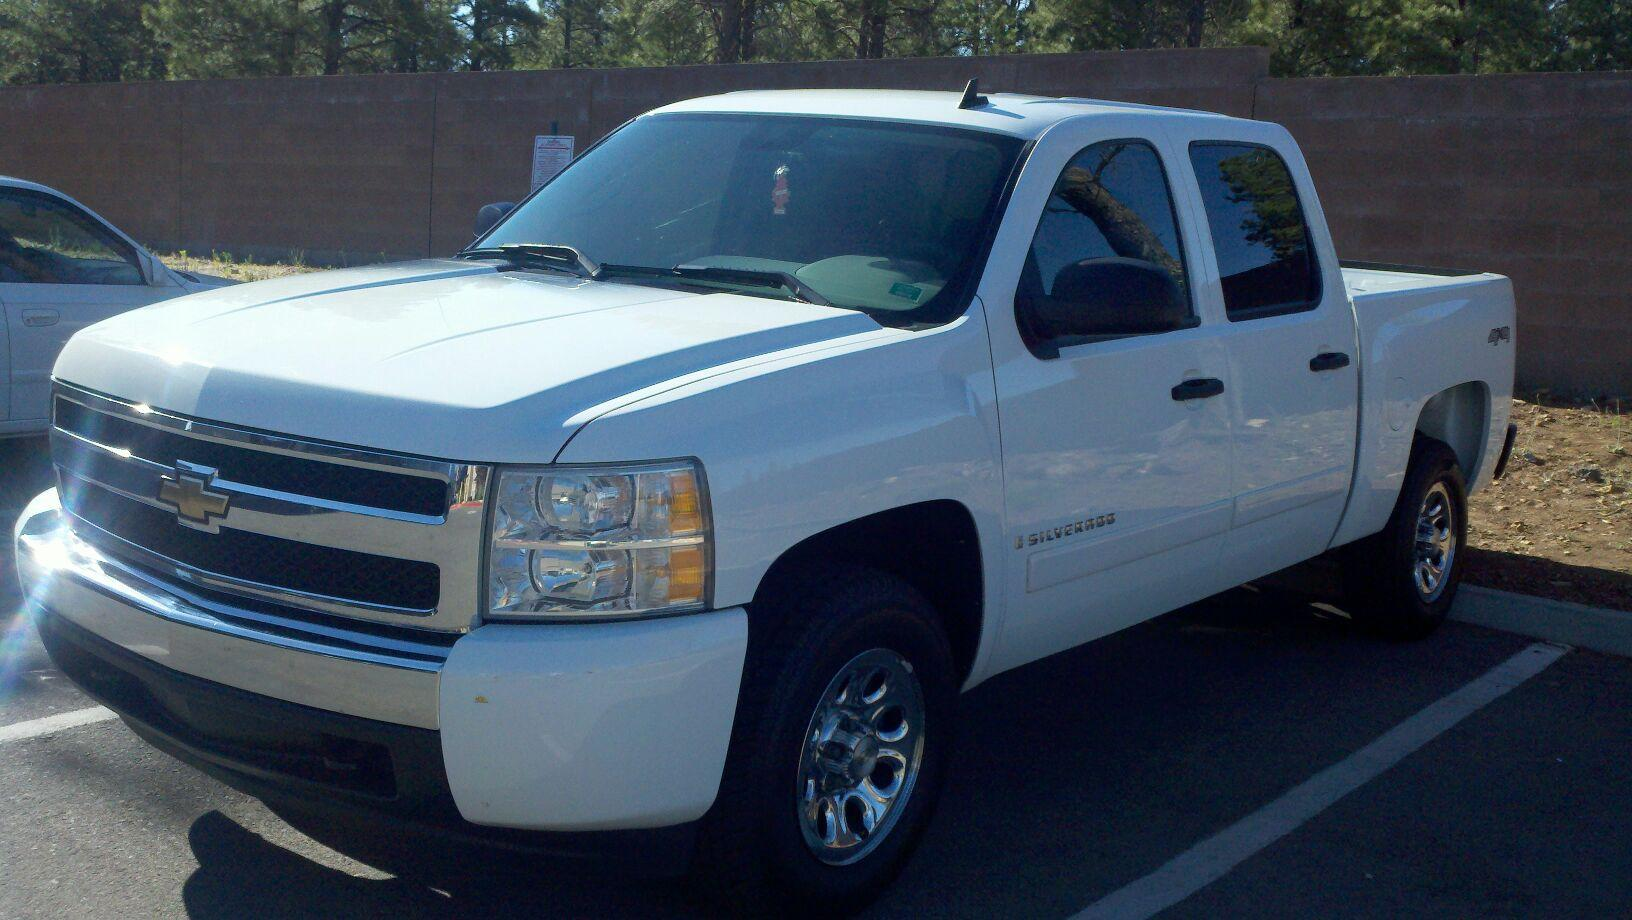 jmrenko 2008 chevrolet silverado 1500 crew cablt pickup 4d 5 3 4 ft specs photos modification. Black Bedroom Furniture Sets. Home Design Ideas